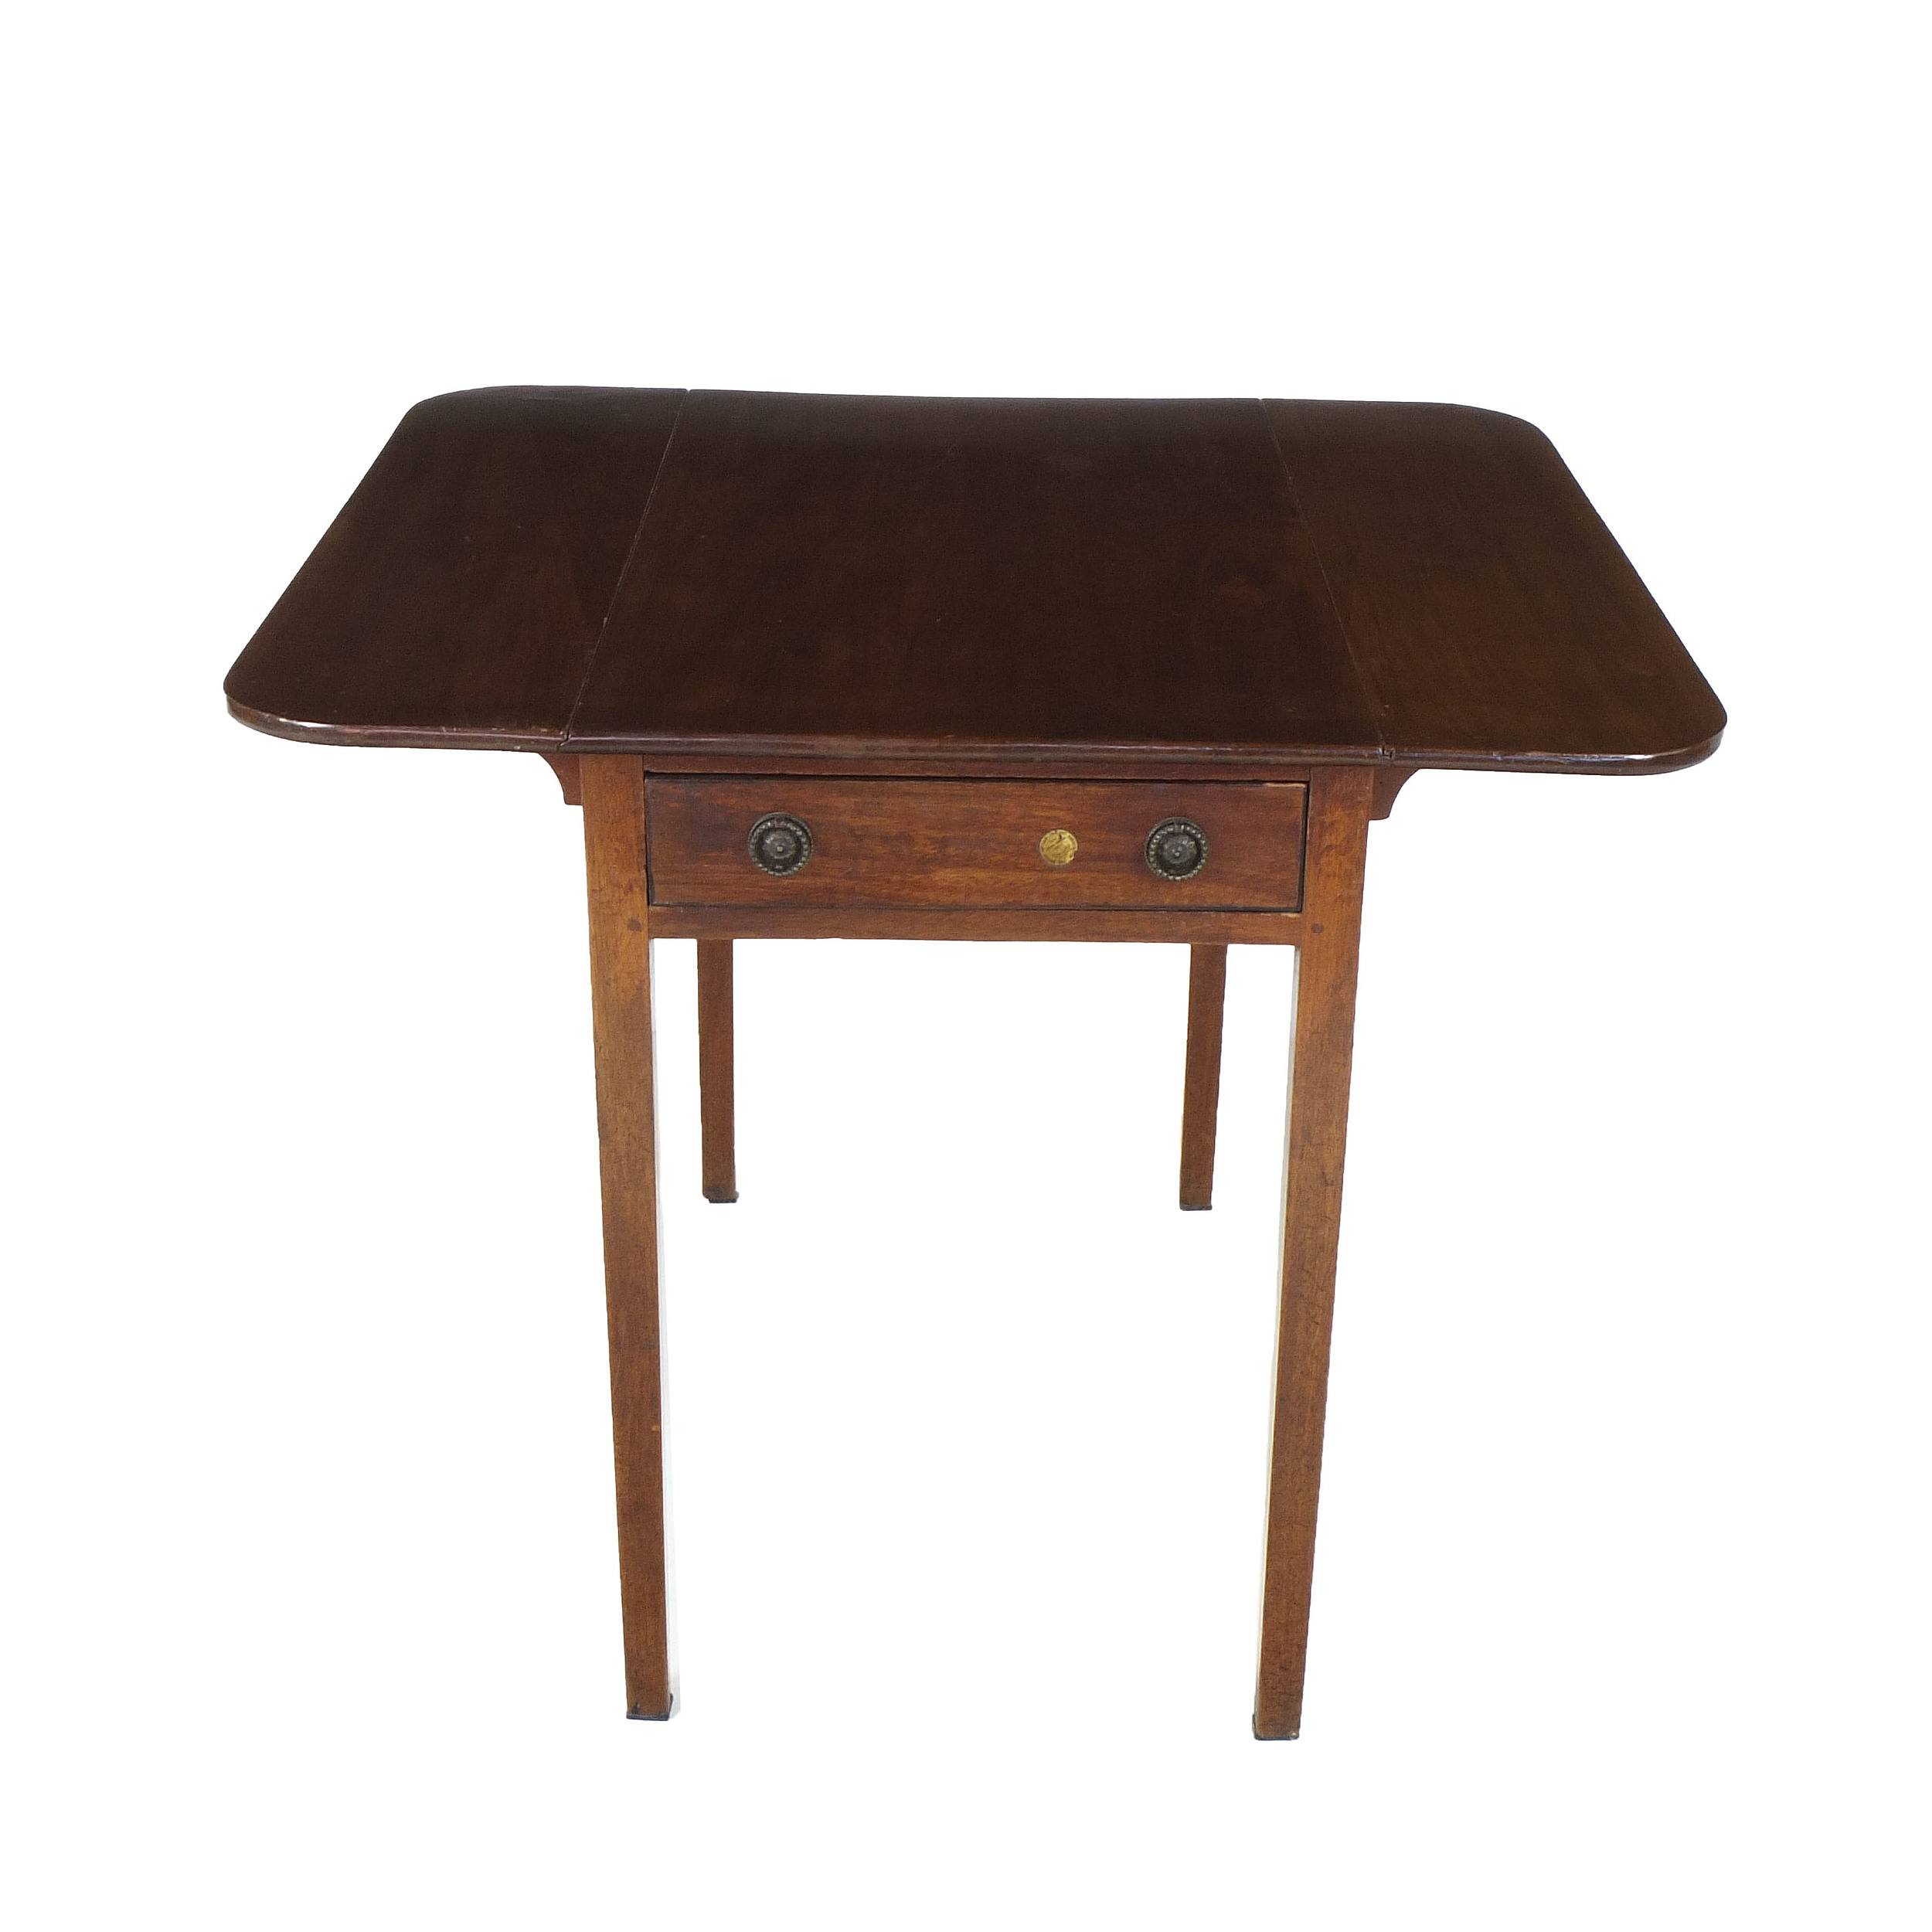 'Georgian Mahogany Pembroke Table Circa 1800'